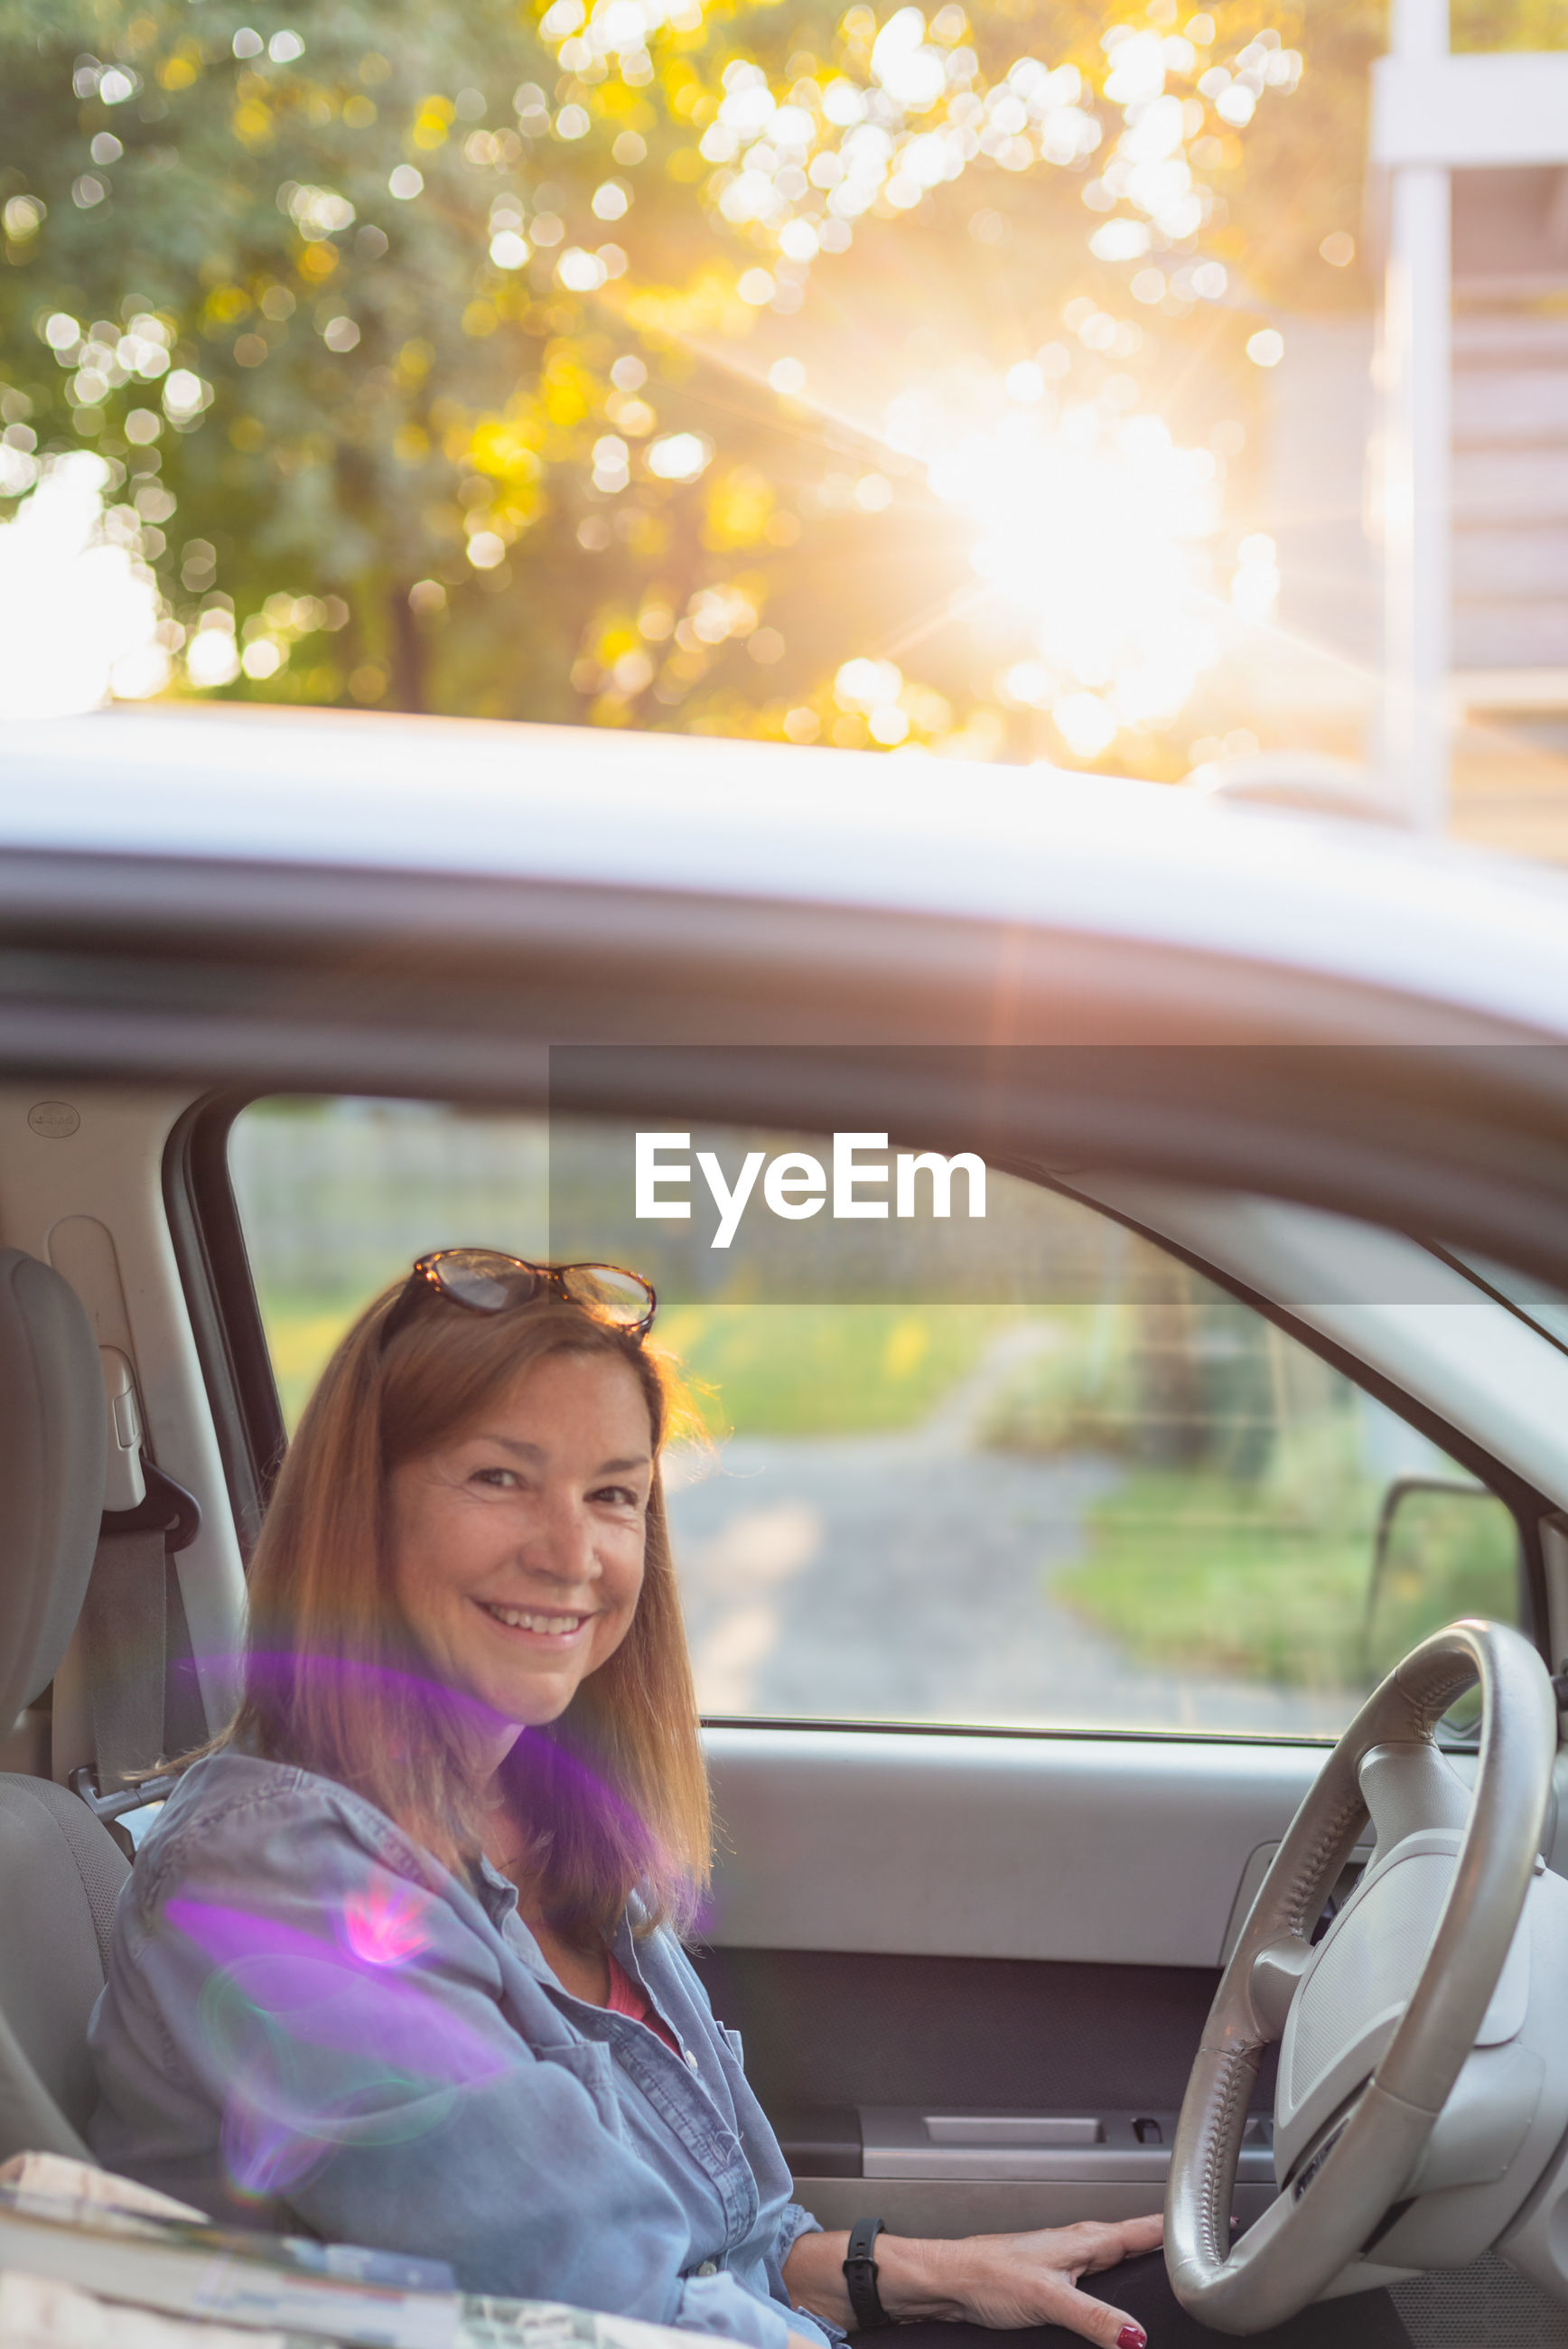 Portrait of mature woman smiling while driving car during sunset